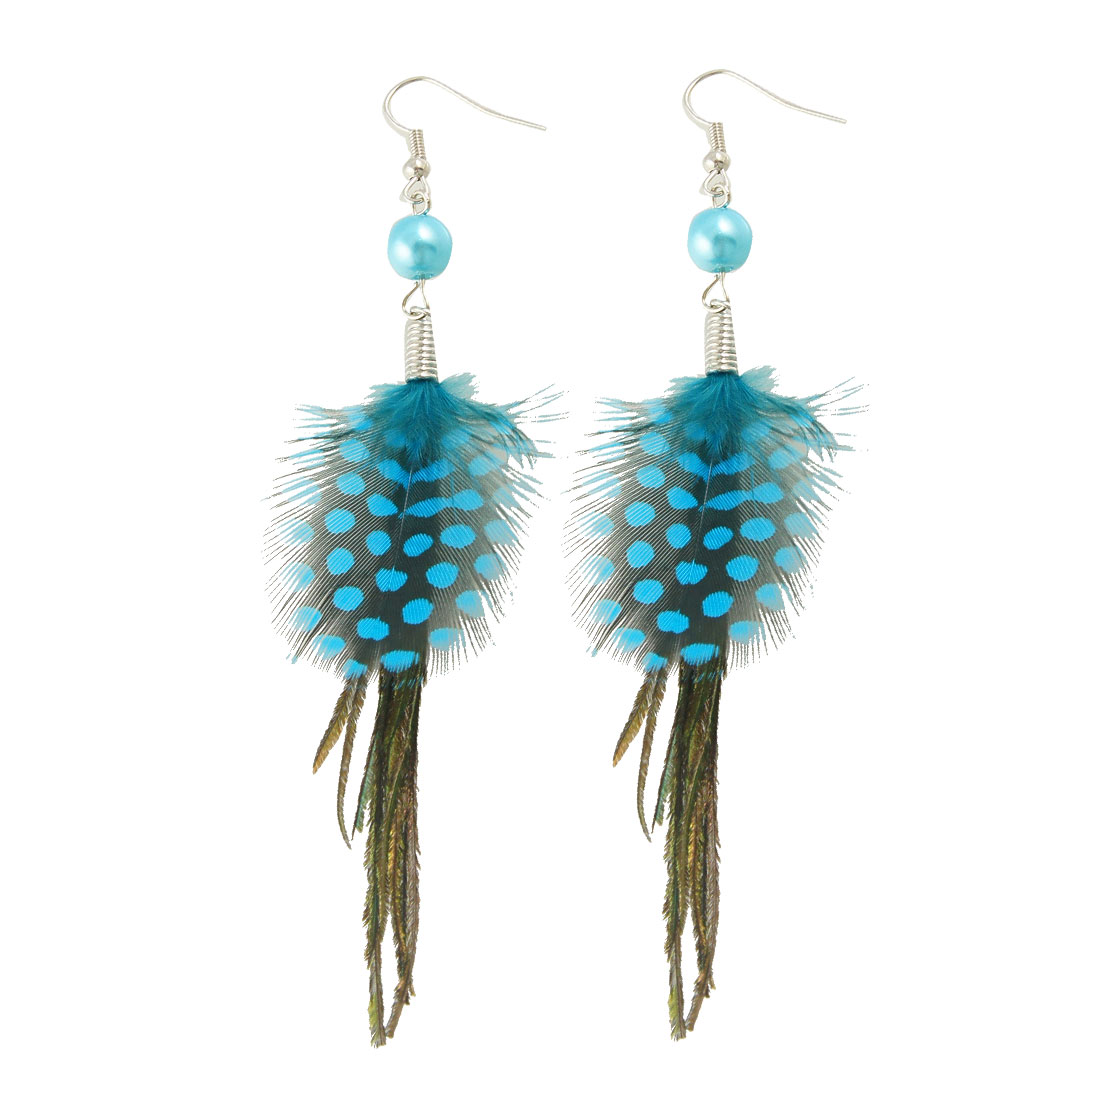 Pair Green Blue Black Faux Feather Plastic Beads Hook Earrings for Ladies